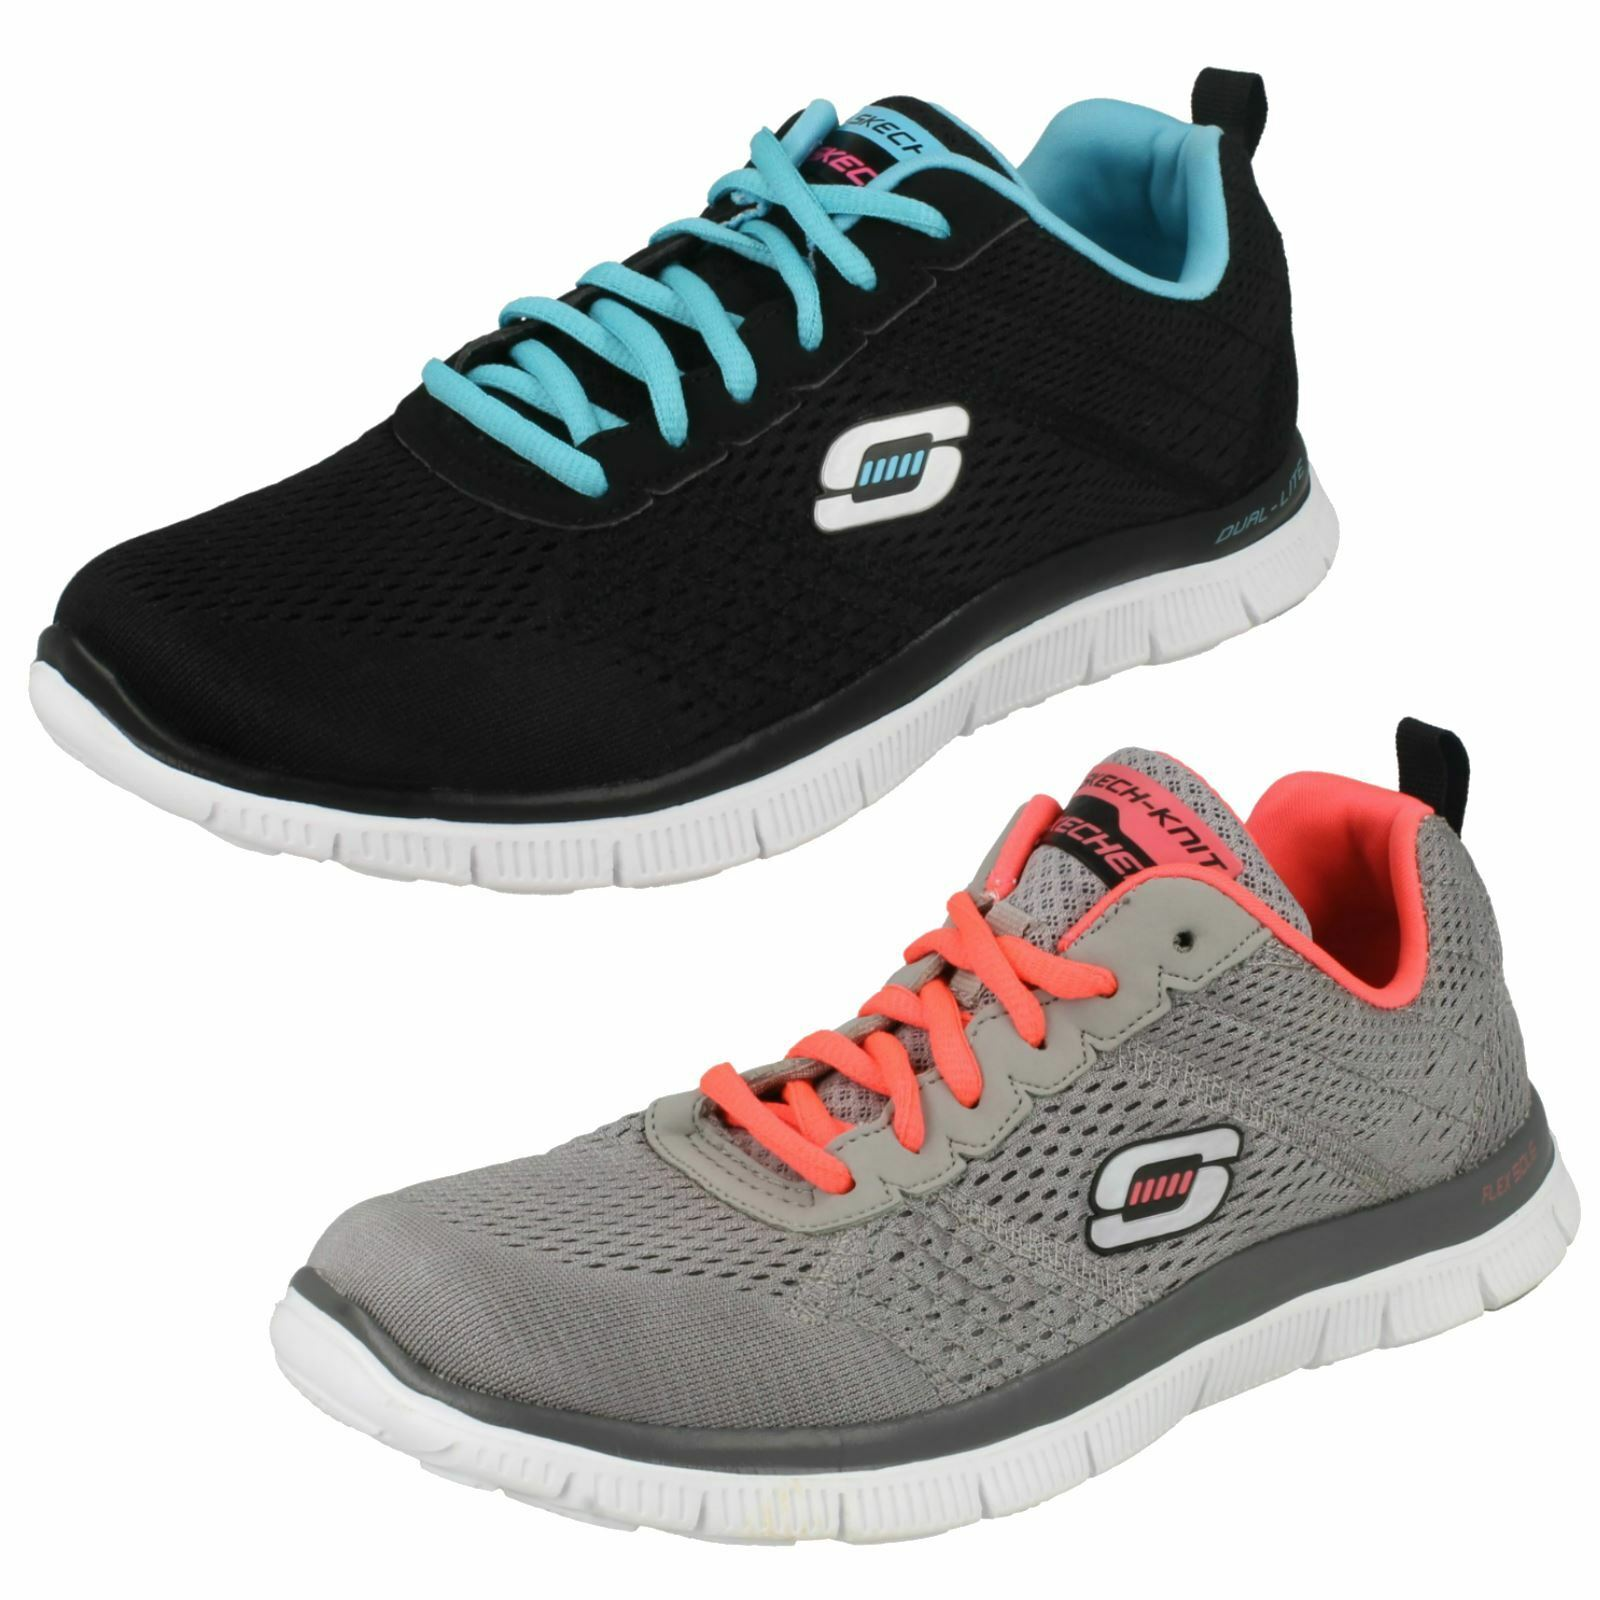 Skechers Ladies Flex Appeal Trainers Obvious Choice